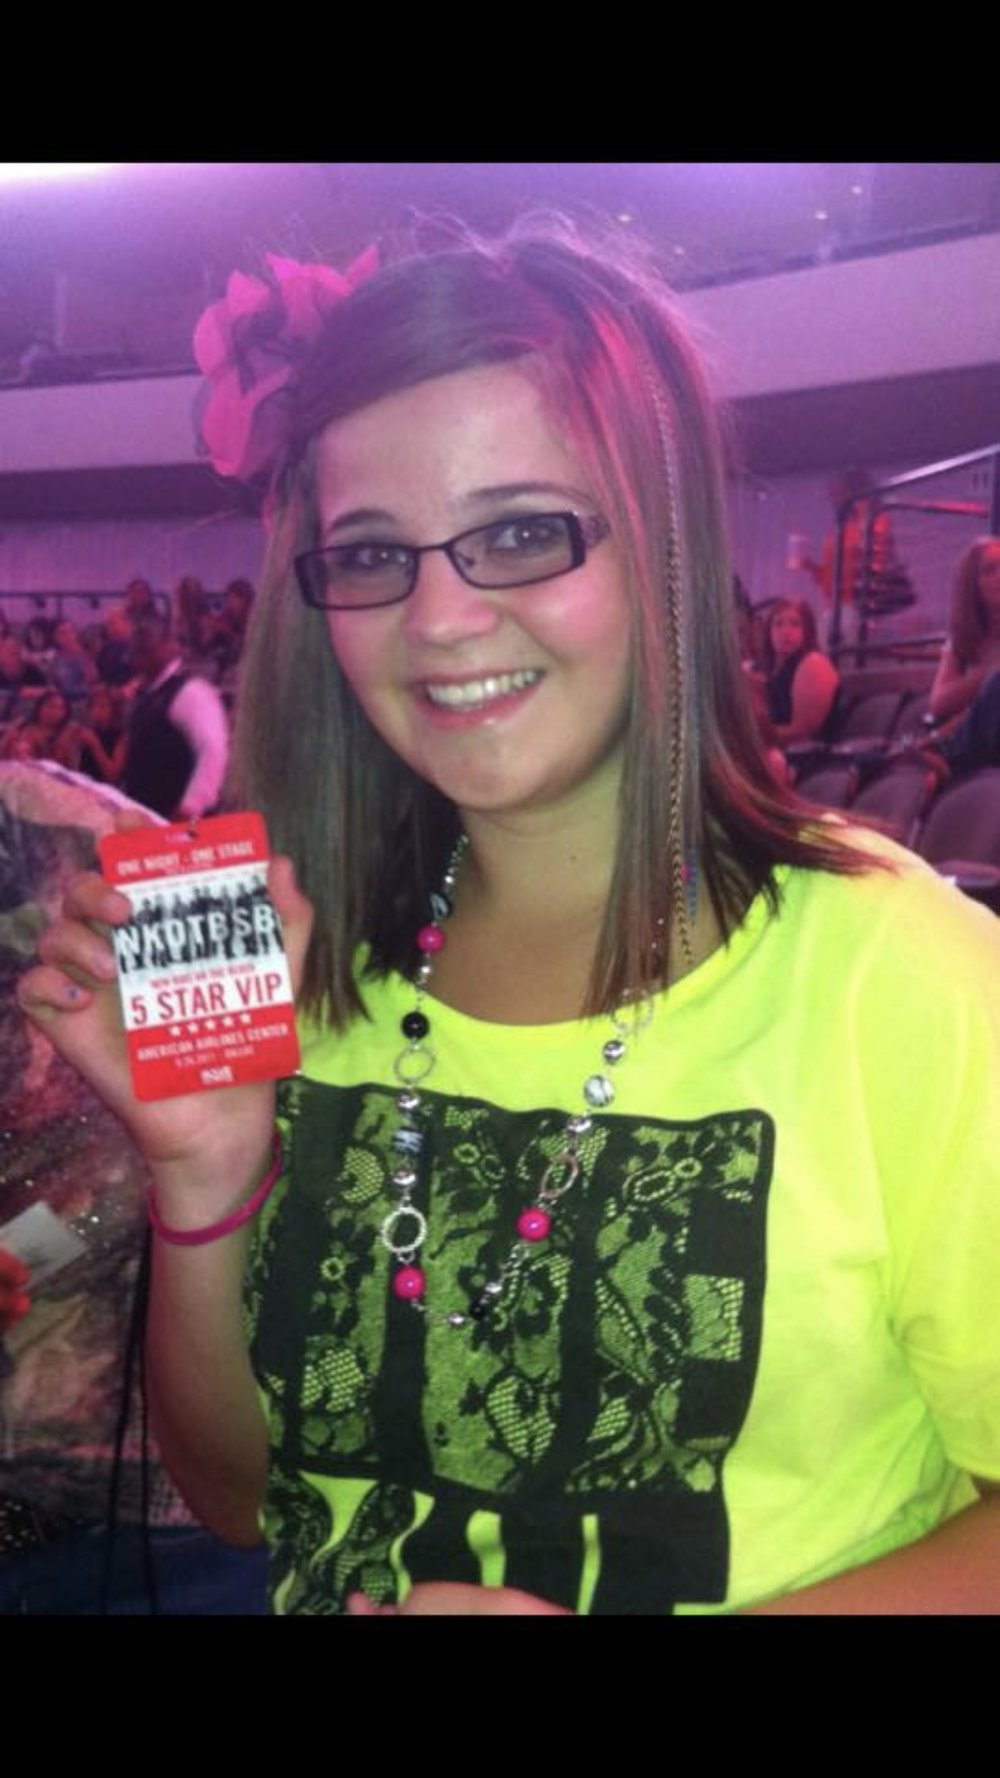 PIC FROM NKOTBSB TOUR (this was not really her lanyard, Reagan posed with it, lol)